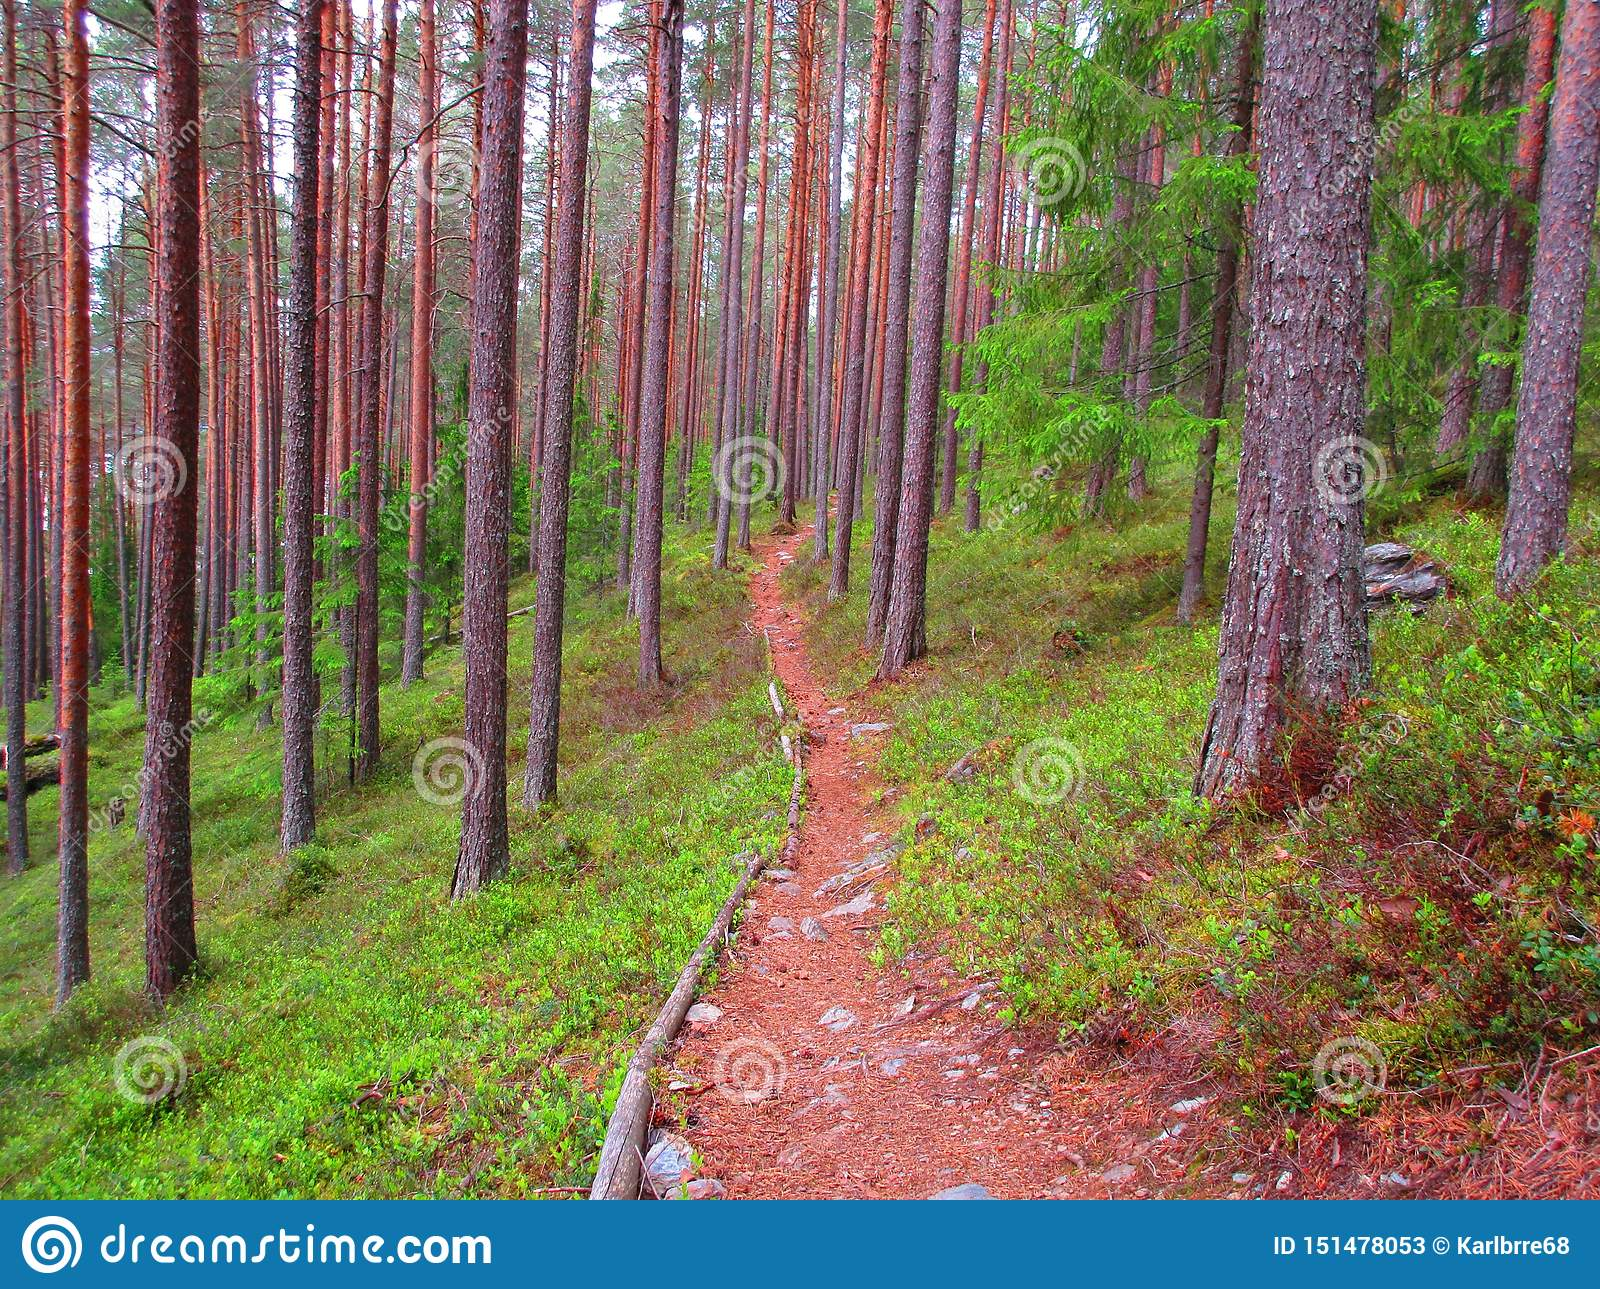 A long path true the forest whit pine on both side